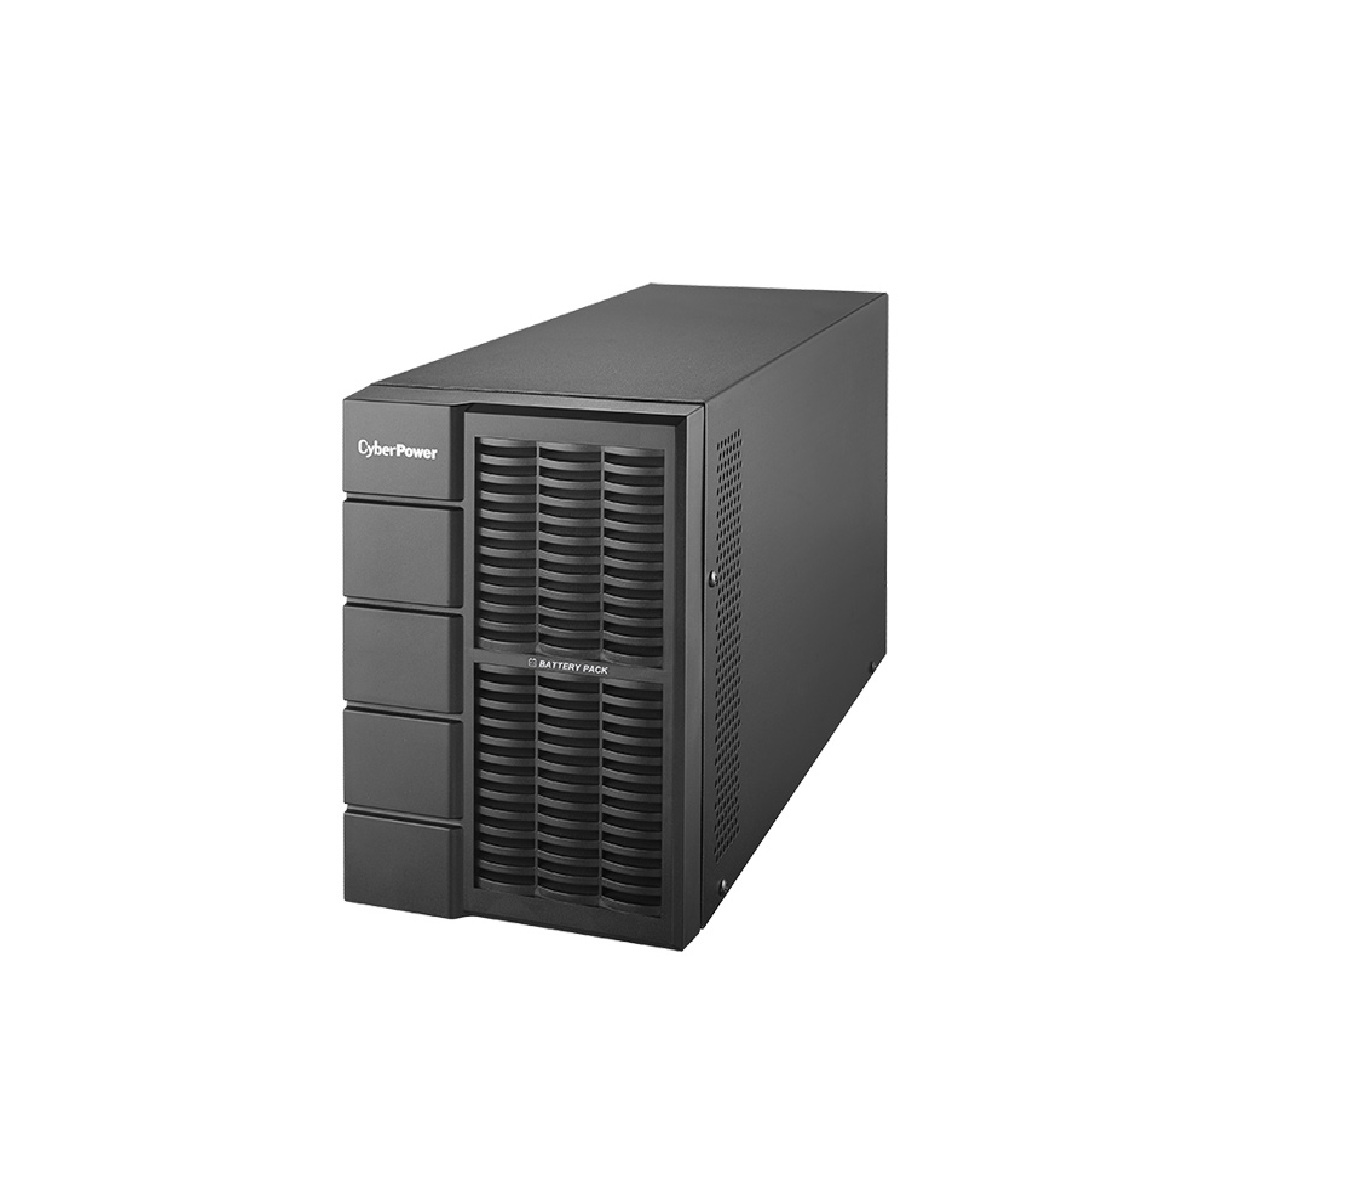 Bộ nguồn ắc quy CyberPower BPSE36V45A